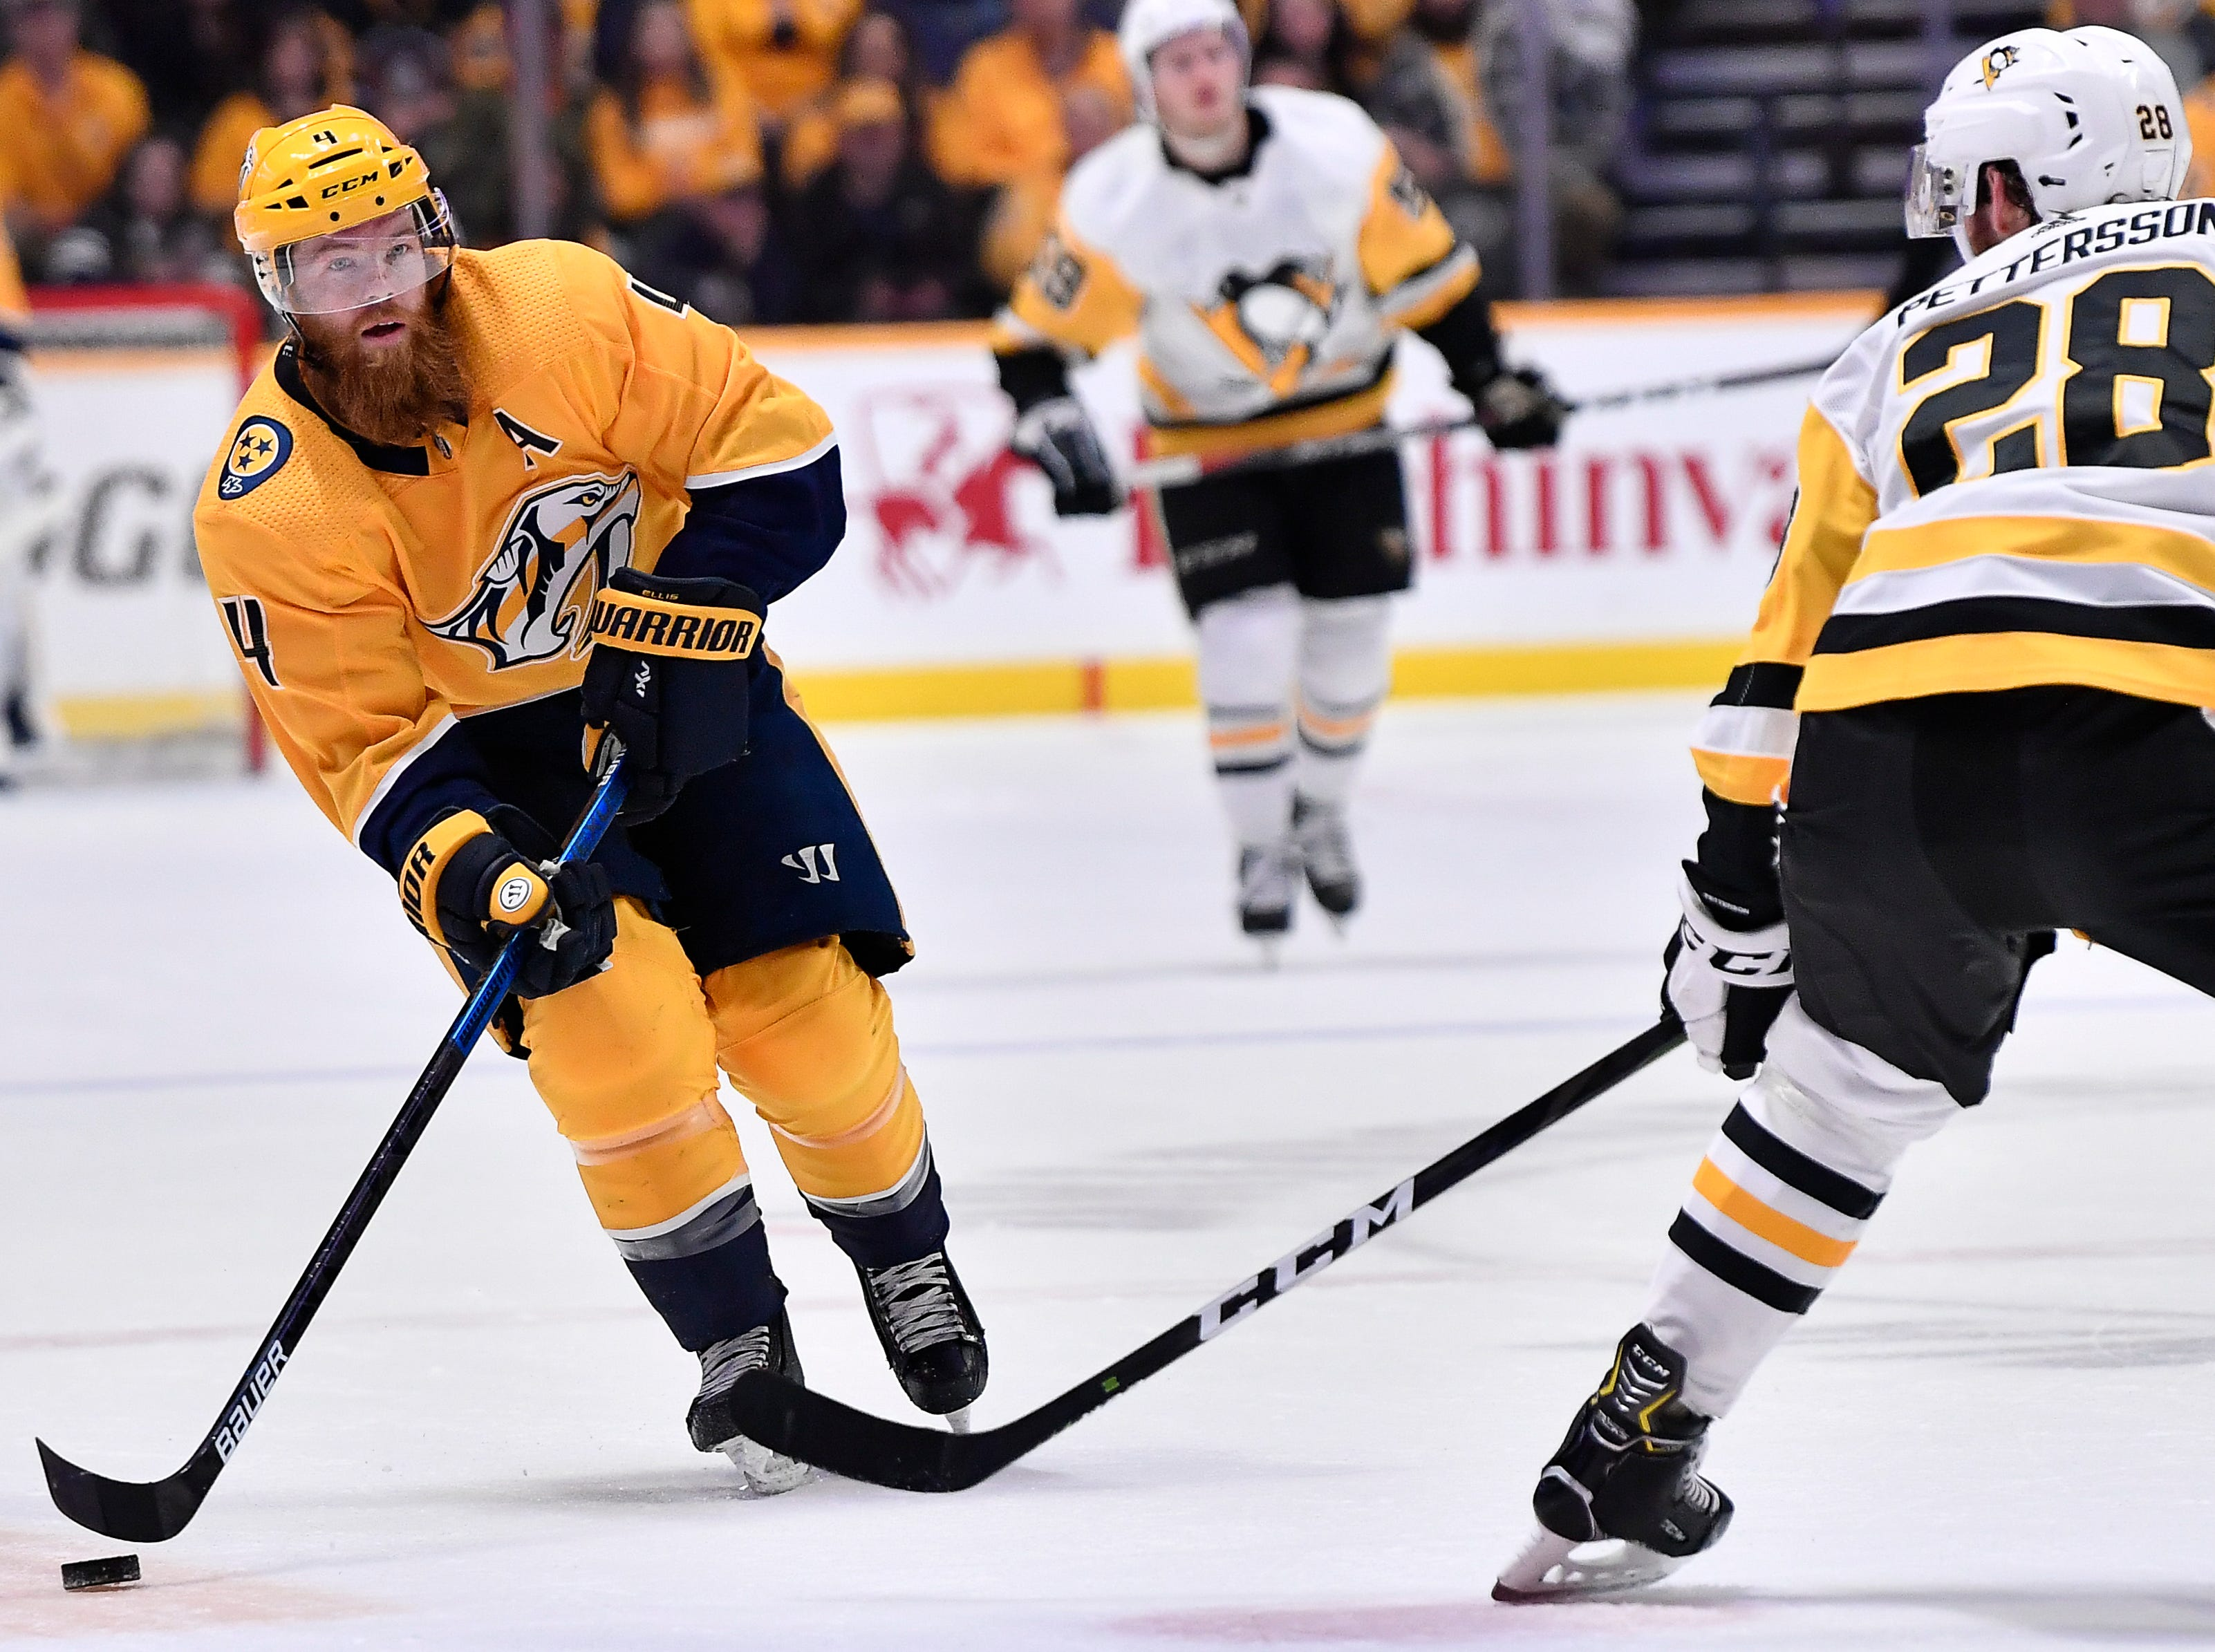 Predators defenseman Ryan Ellis (4) tries to take a last second shot past Penguins defenseman Marcus Pettersson (28) during the first period at Bridgestone Arena Thursday, March 21, 2019 in Nashville, Tenn.